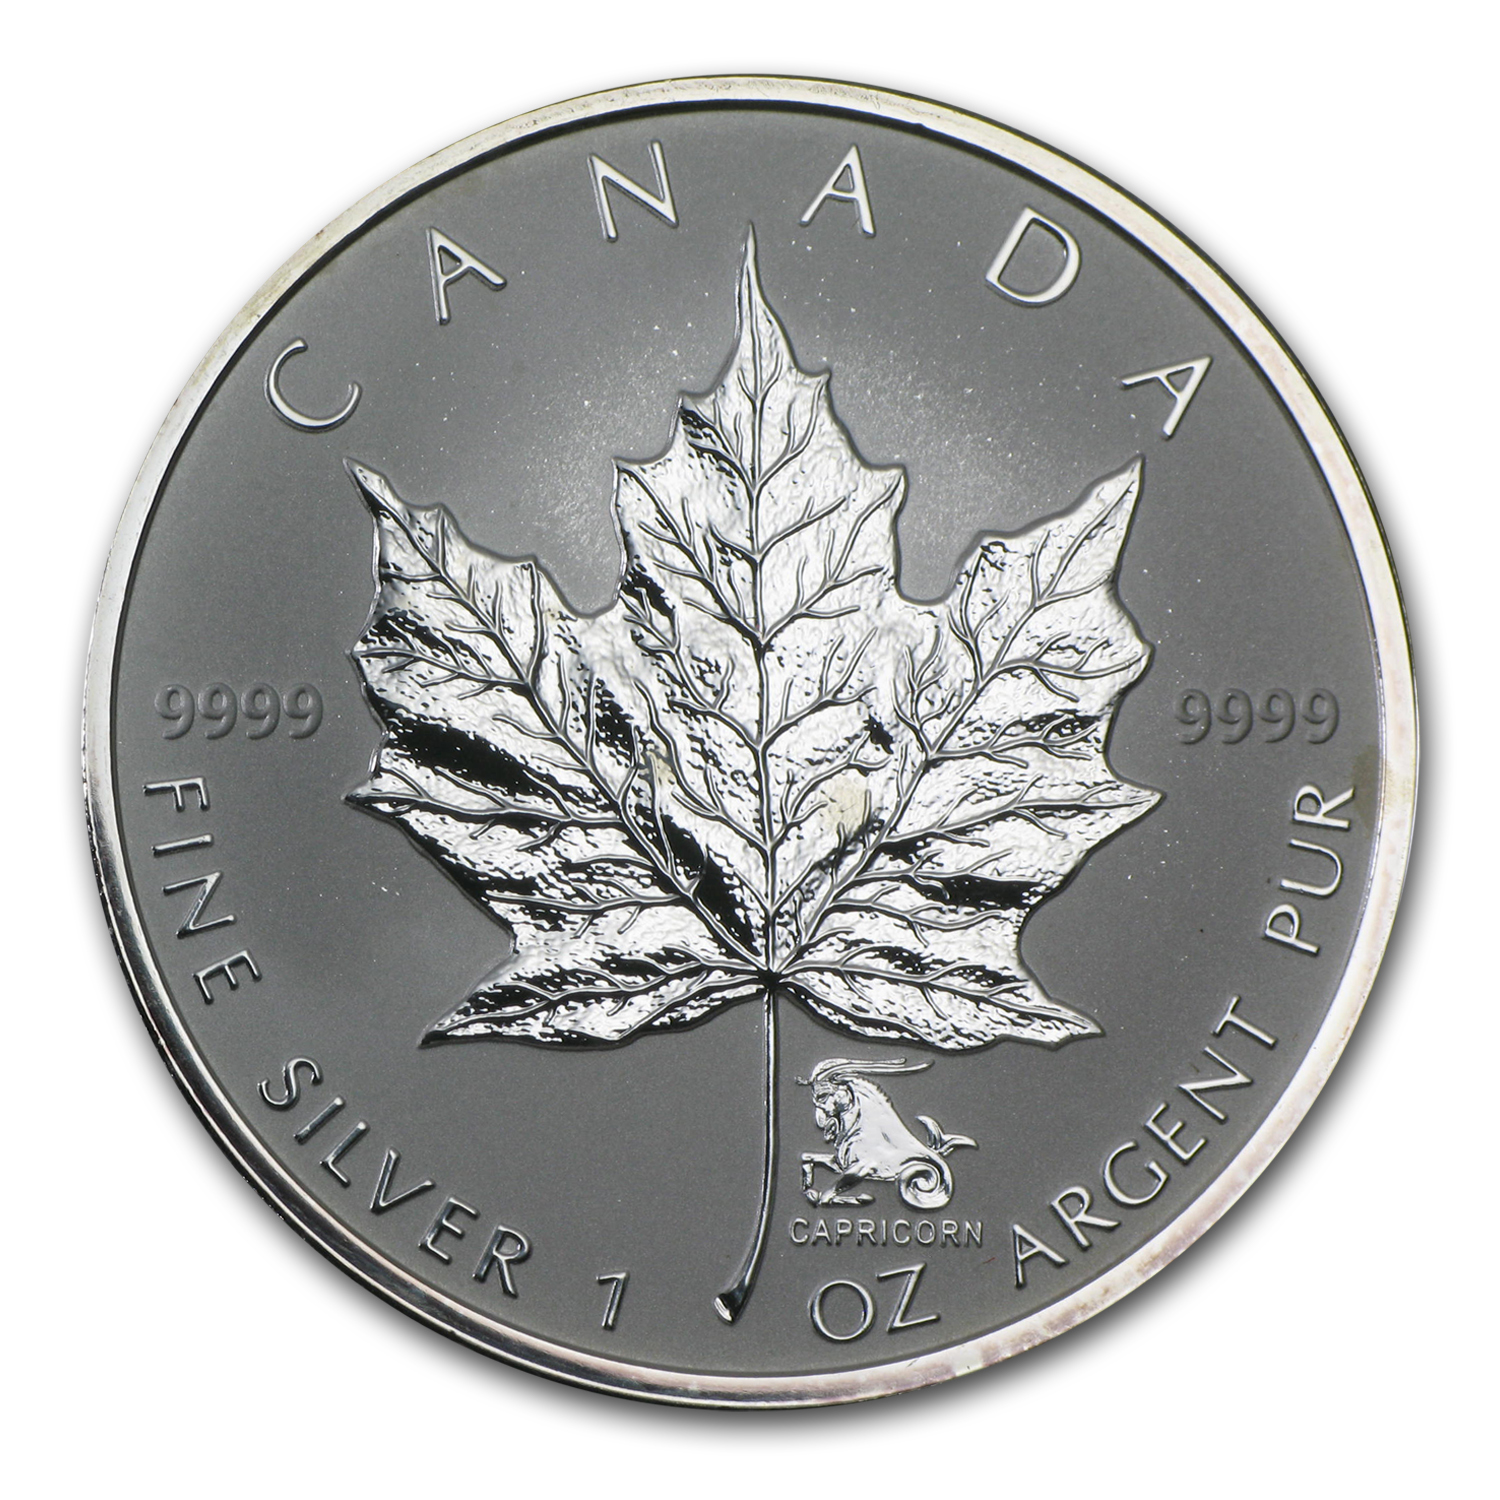 2004 Canada 1 oz Silver Maple Leaf Capricorn Zodiac Privy